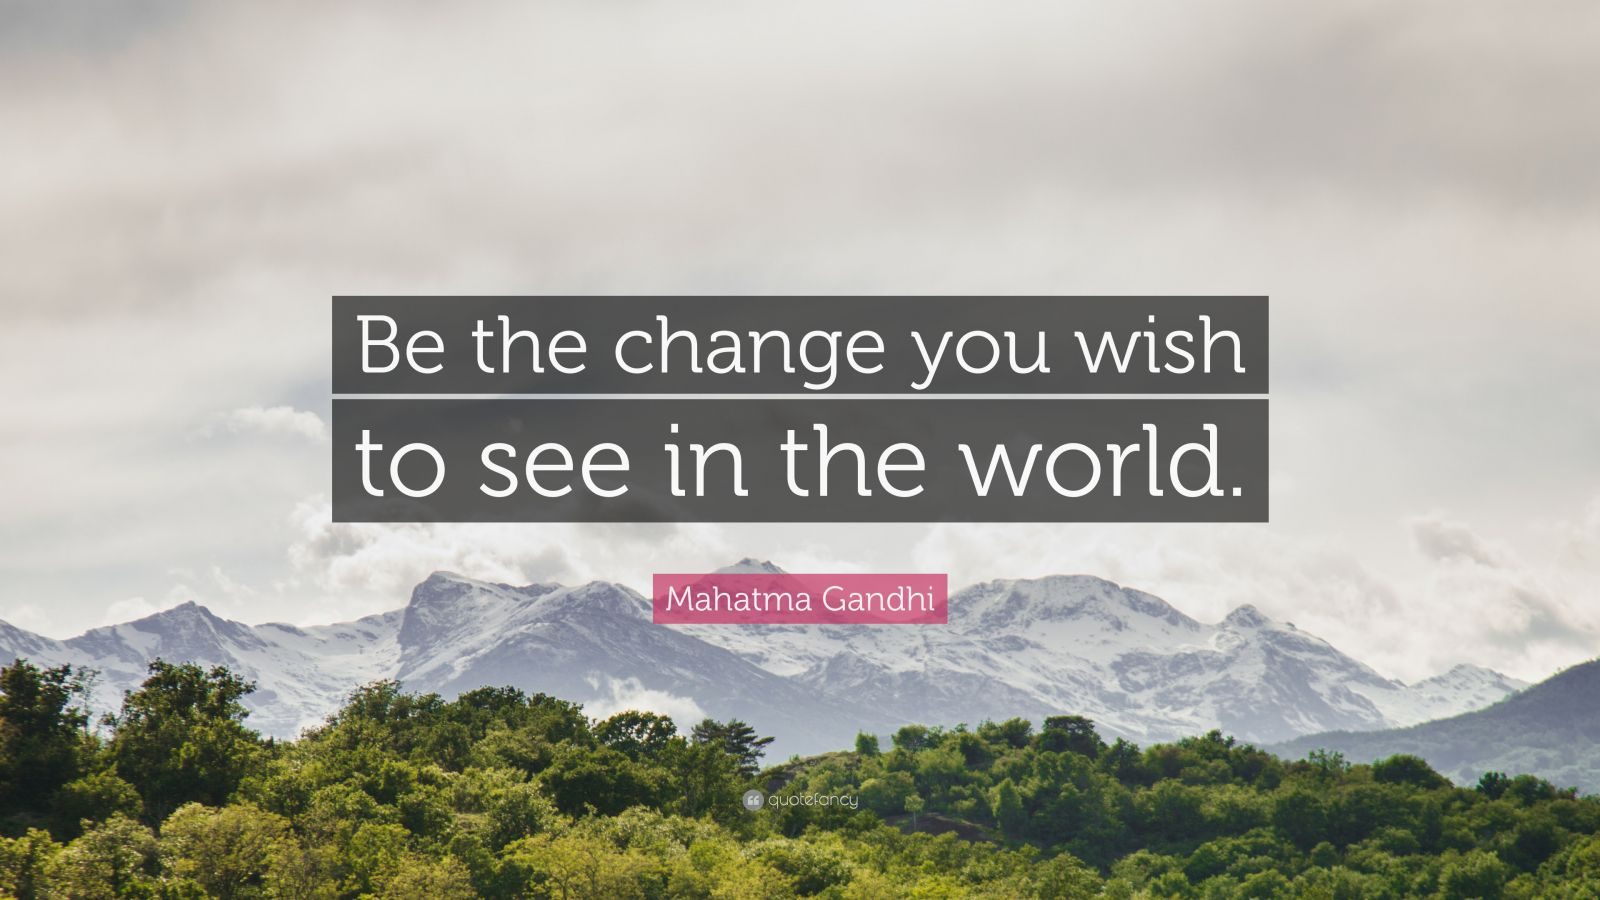 Gandhi Quote Be the Change You Wish to See